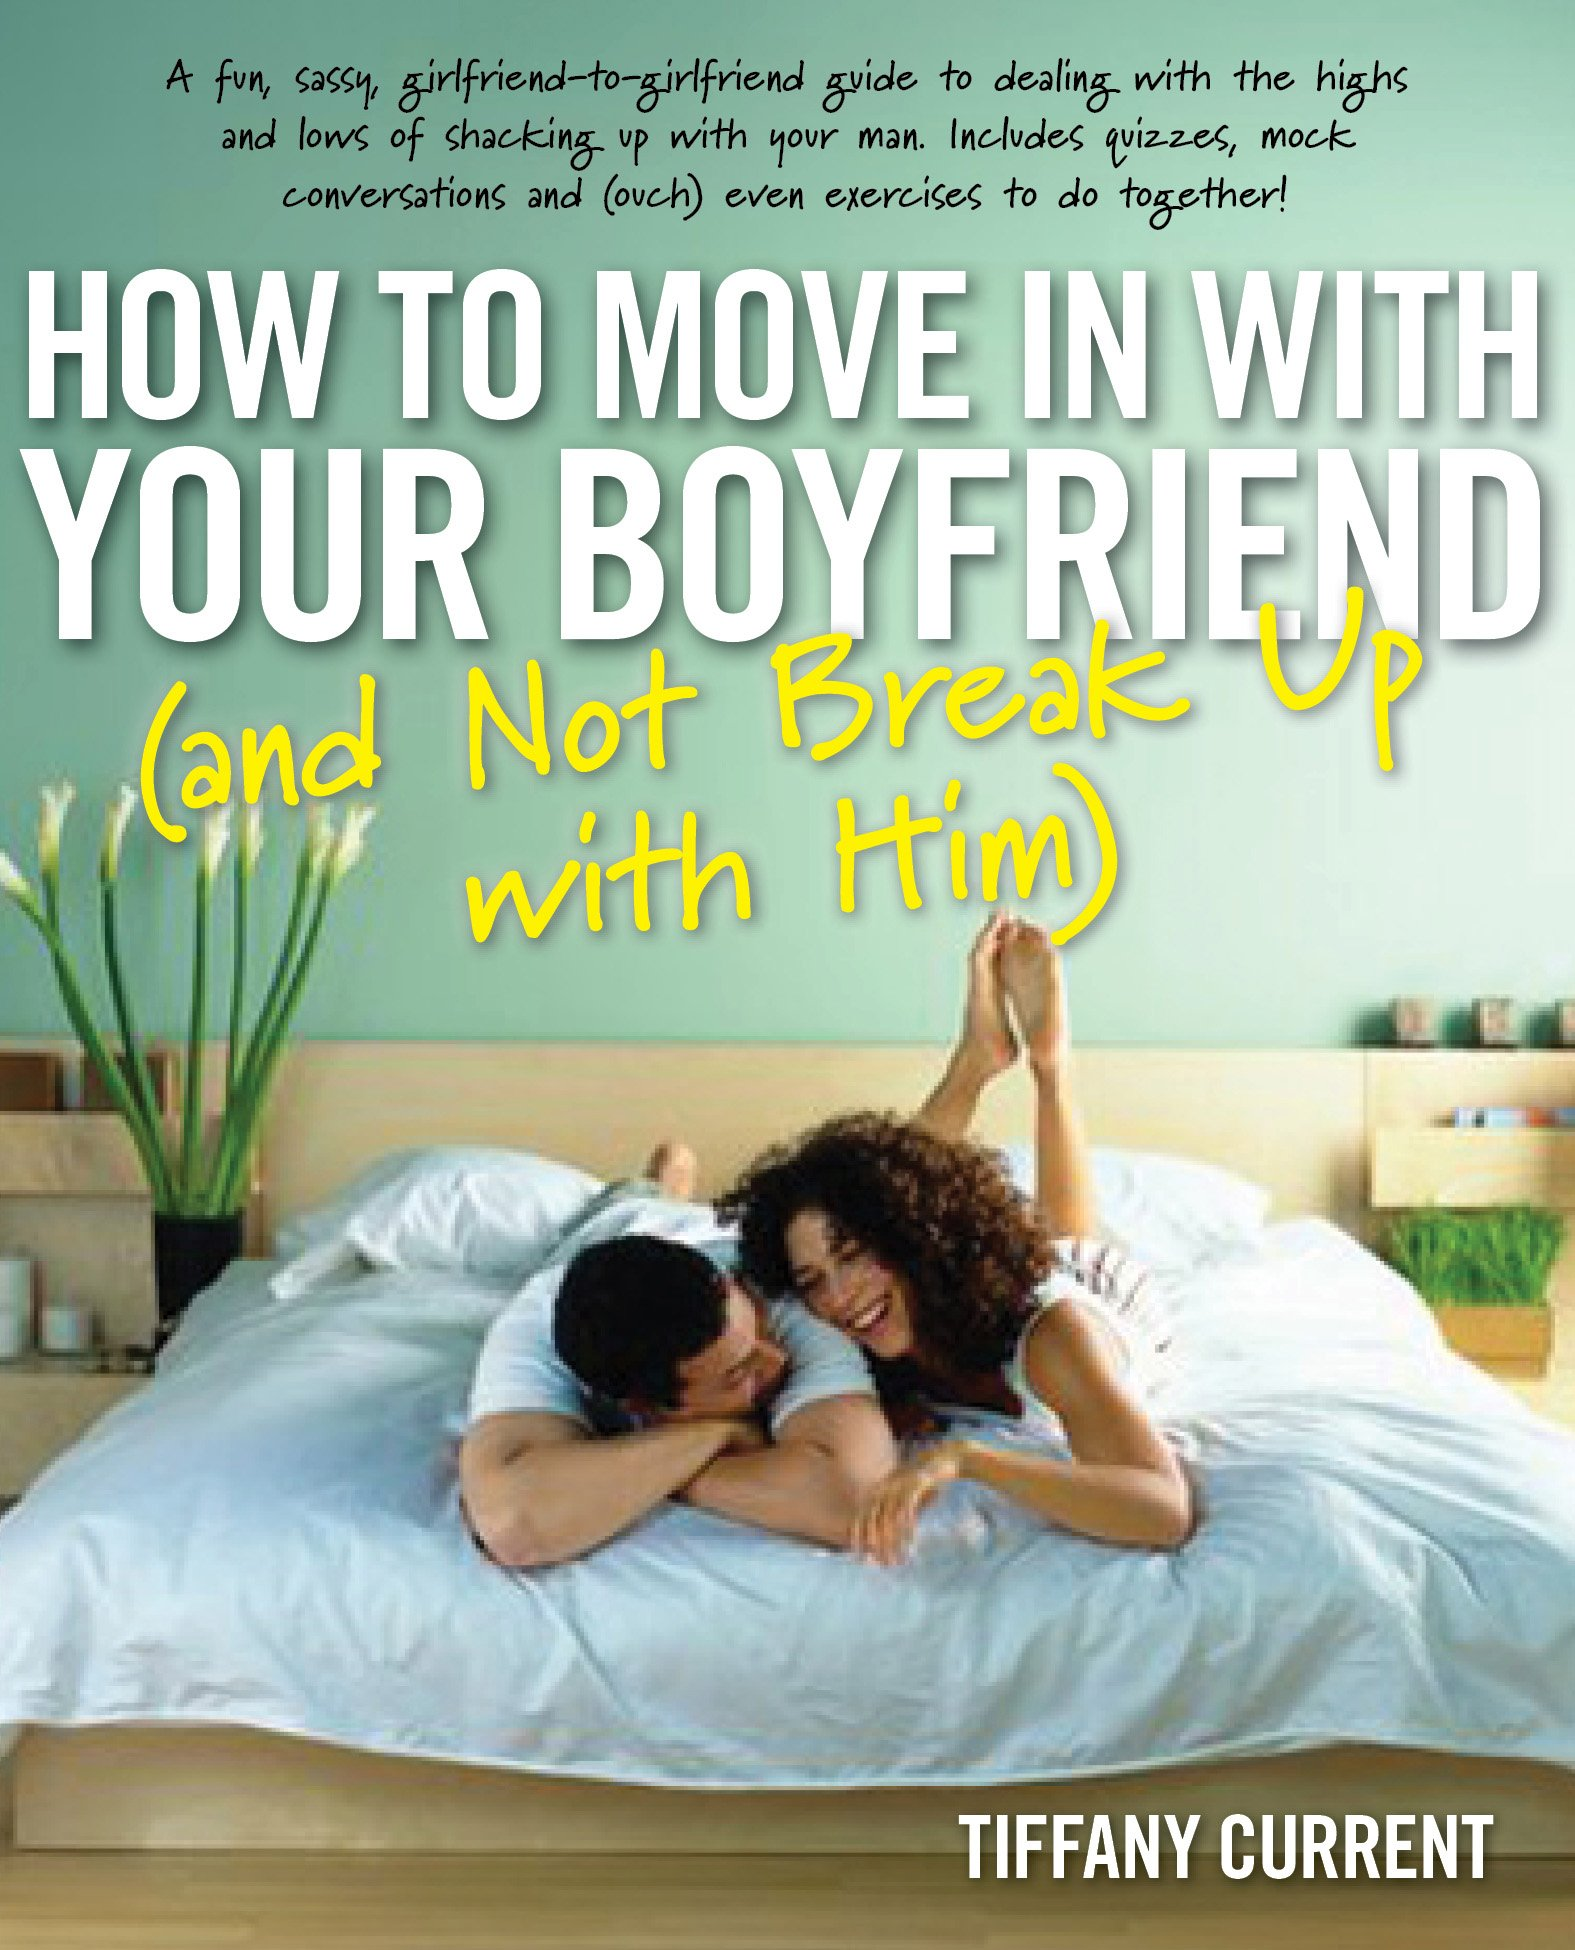 Things to know before moving in with your boyfriend